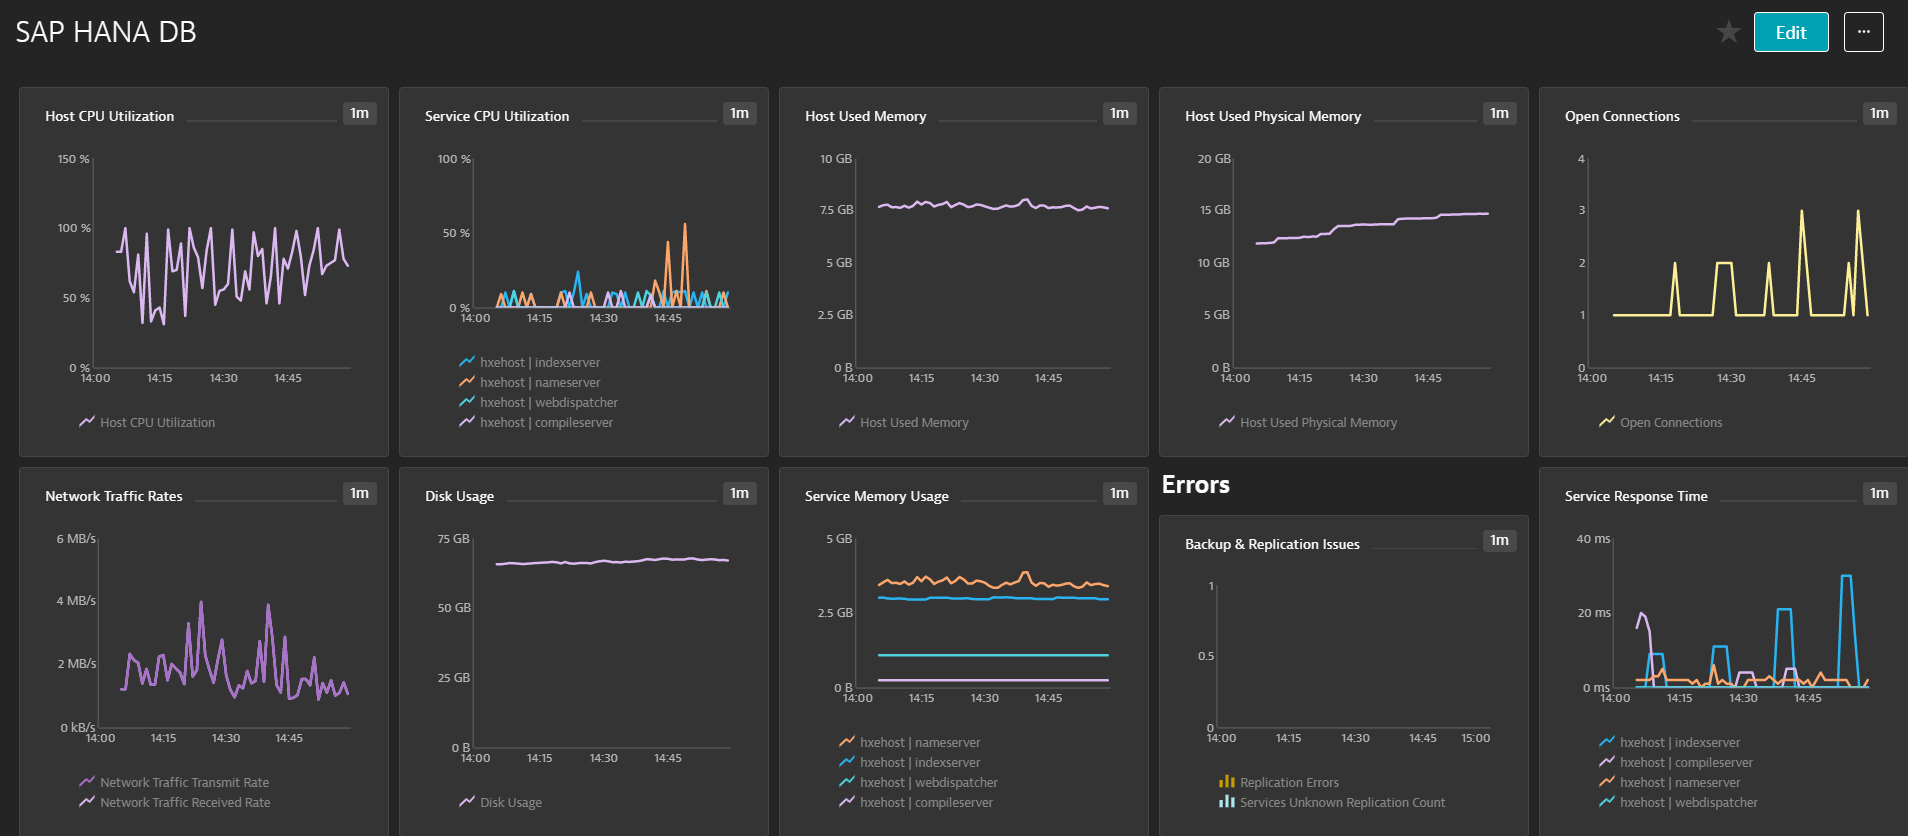 SAP HANA DB KPI Dynatrace Dashboard